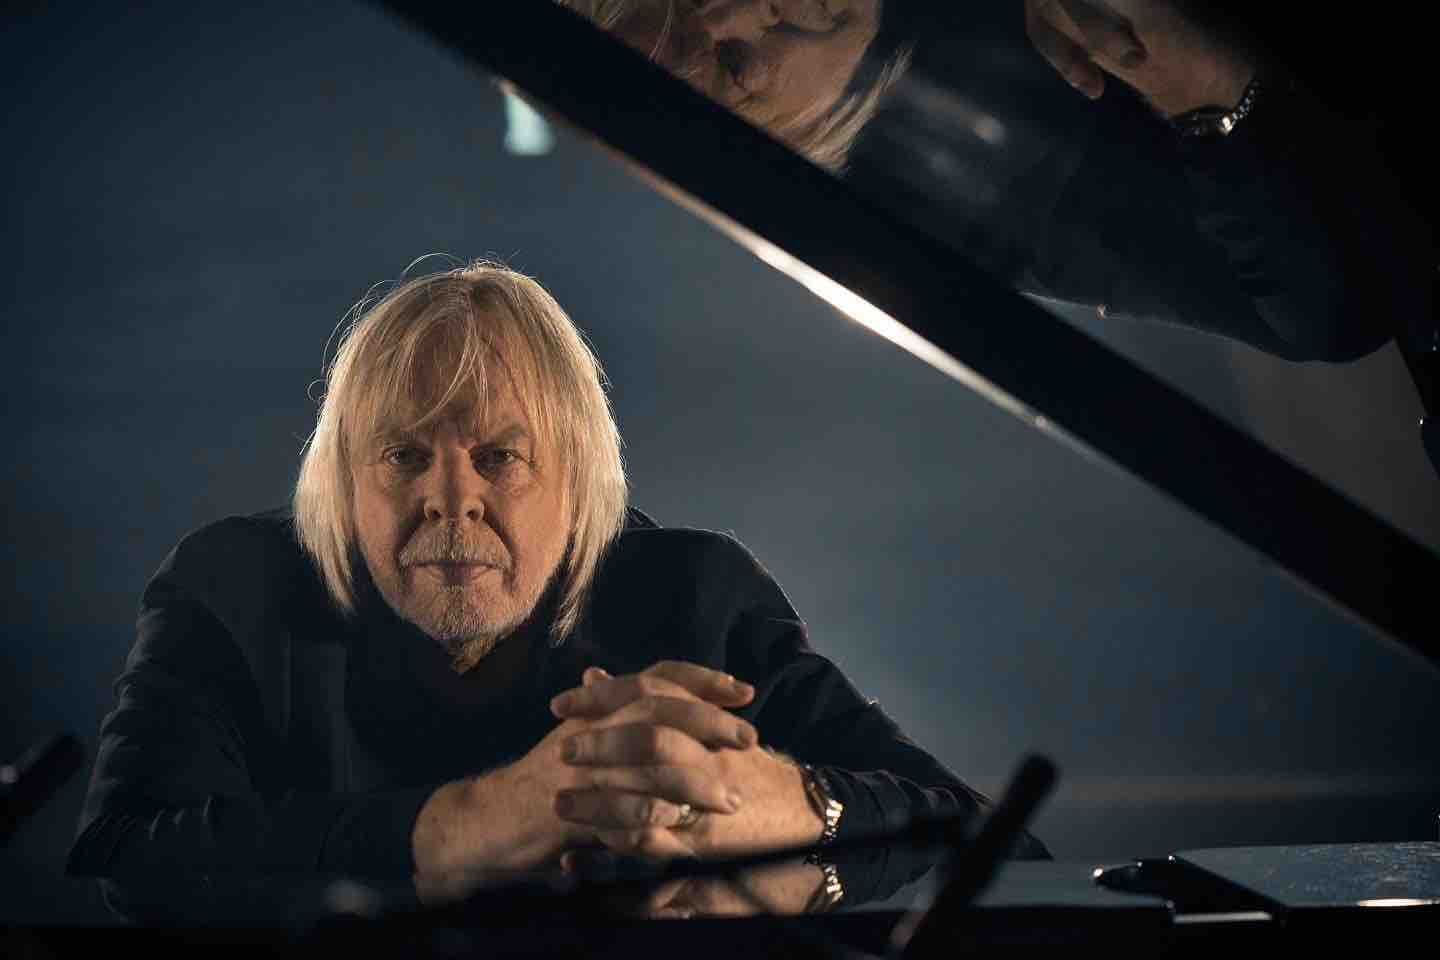 rick-wakeman-piano-portraits-photo-1_02